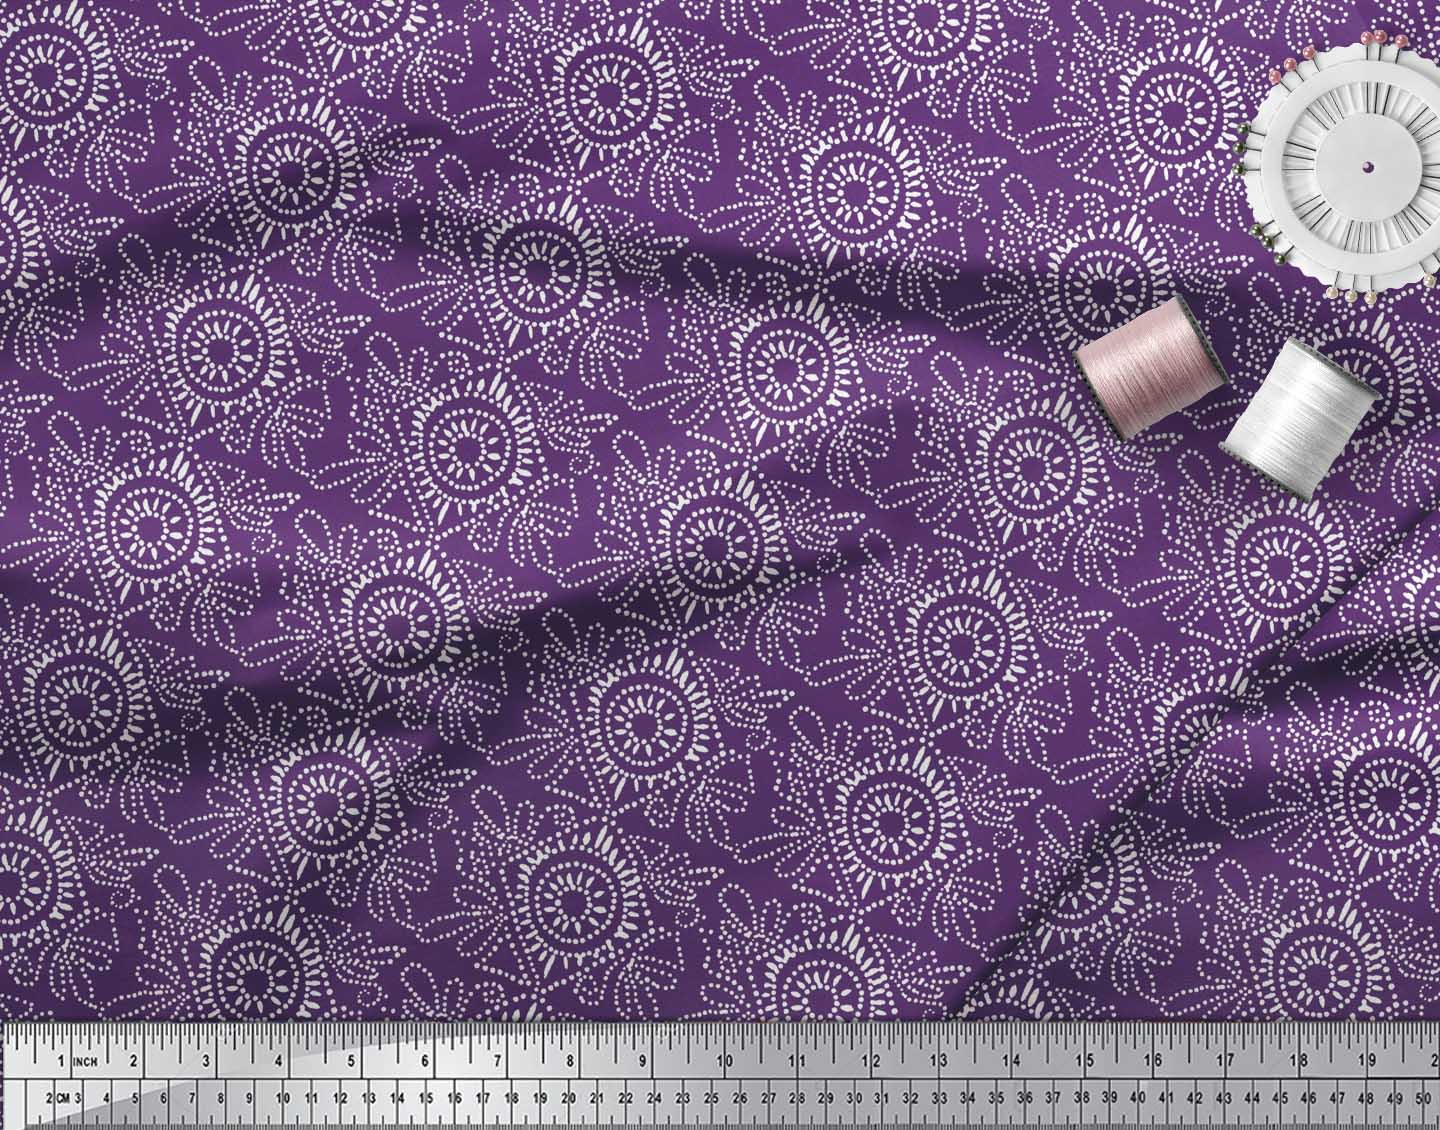 Soimoi-Purple-Cotton-Poplin-Fabric-Print-Block-Print-Sewing-Fabric-G81 thumbnail 4